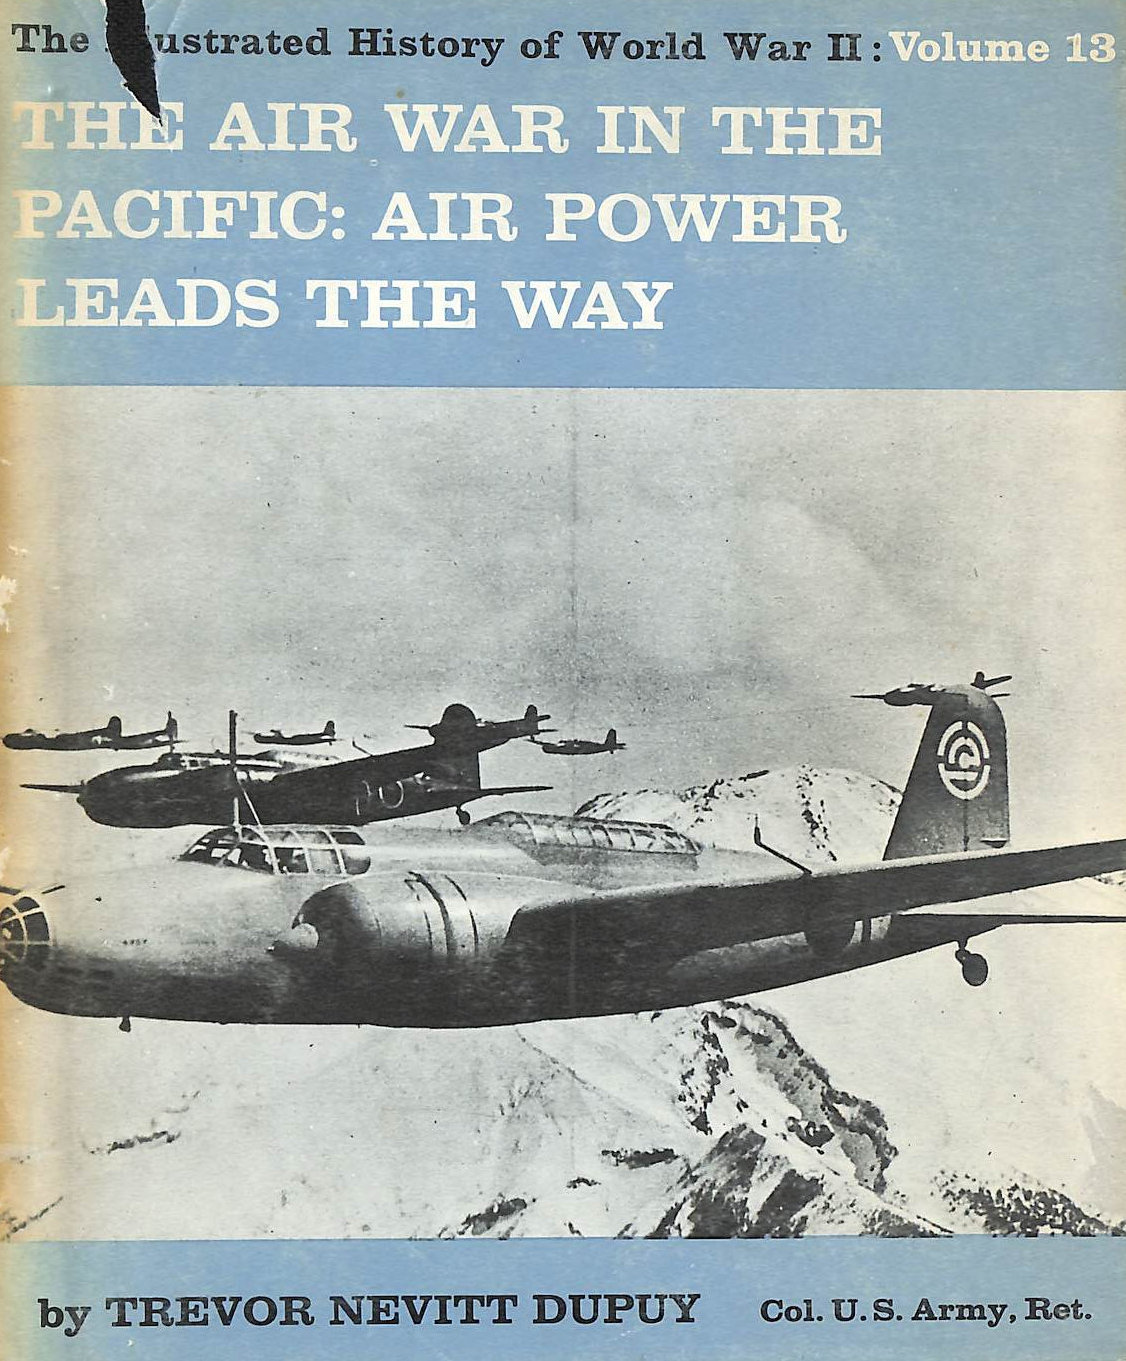 Image for The Illustrated History of World War II: Volume 13. The Air War in the Pacific: Air Power Leads the Way